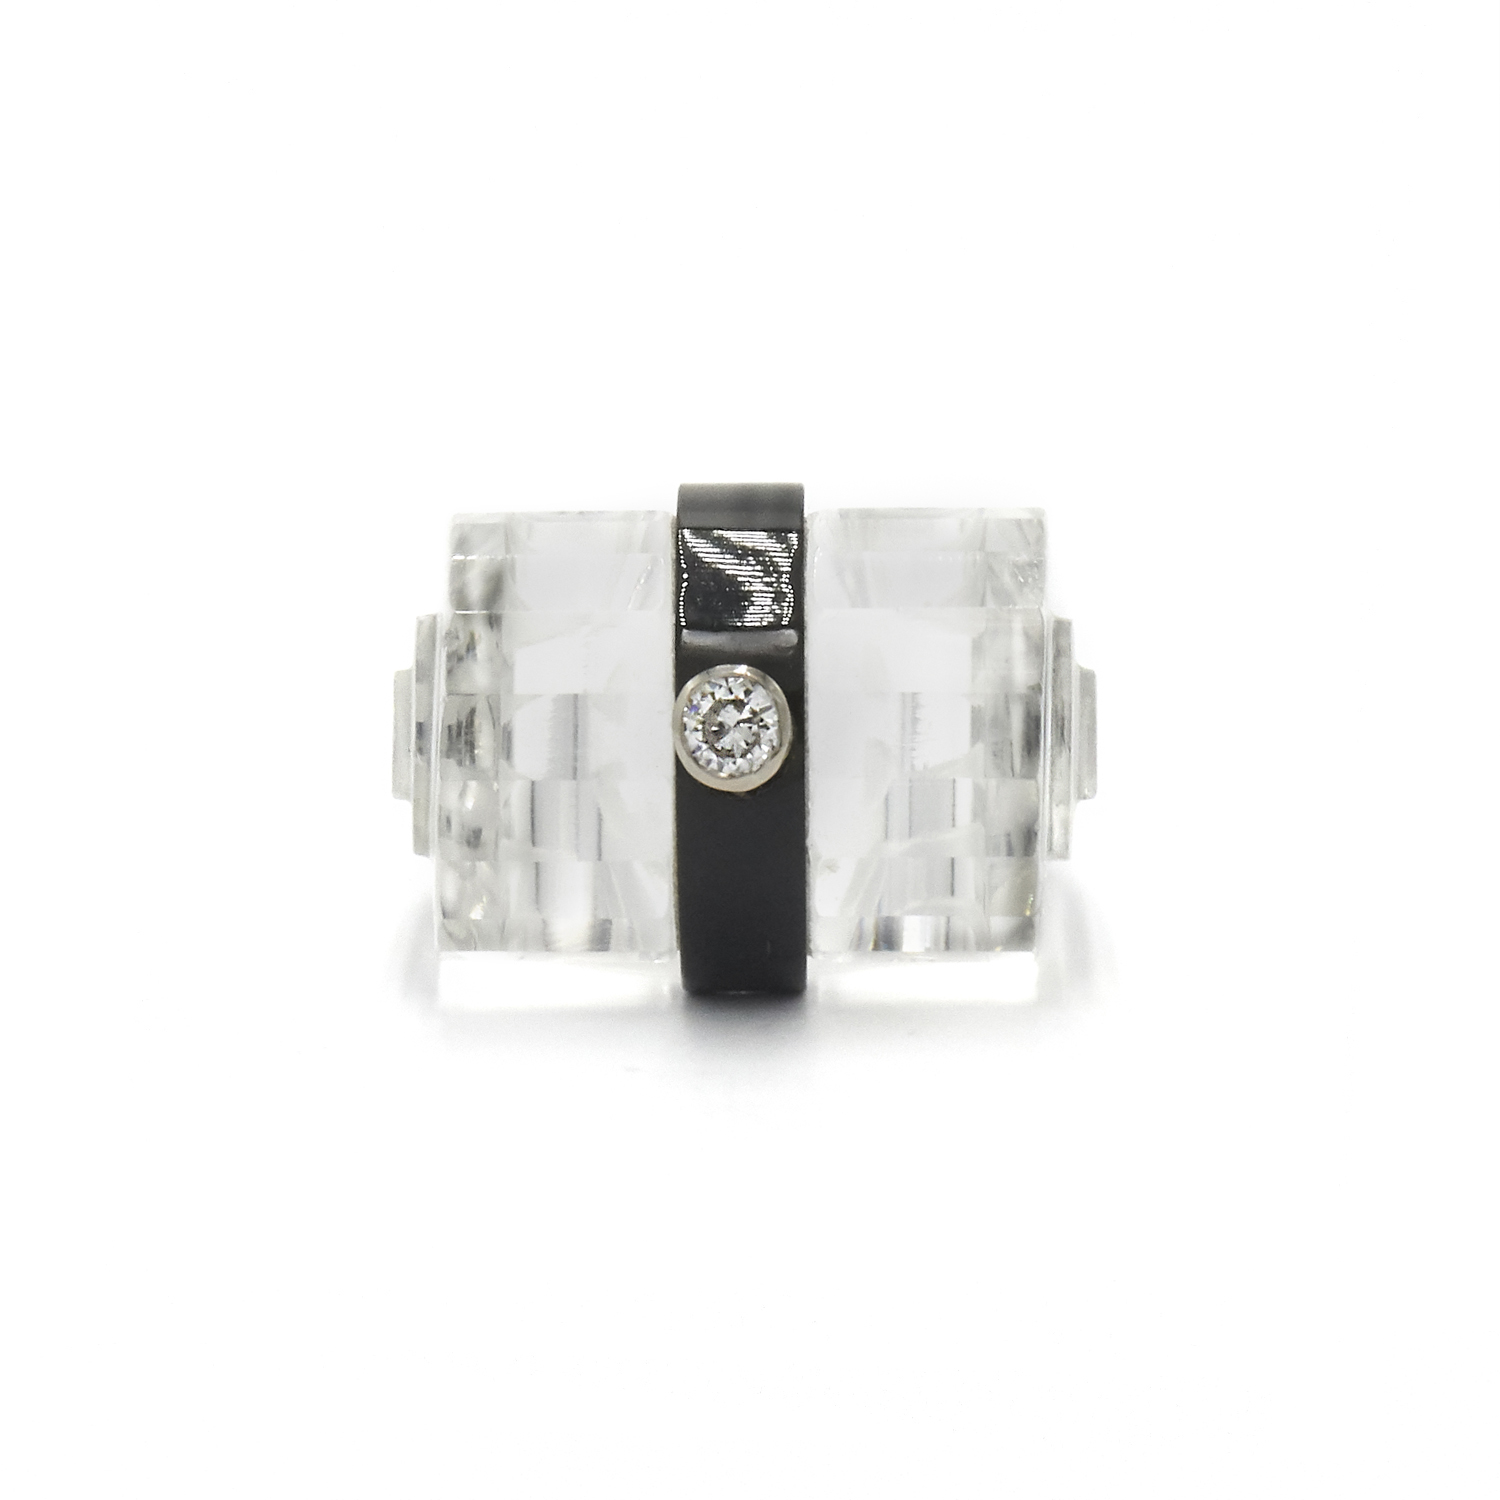 Art Deco Carved Rock Crystal, Onyx and Diamond Ring Style R-32498-FL-0-0